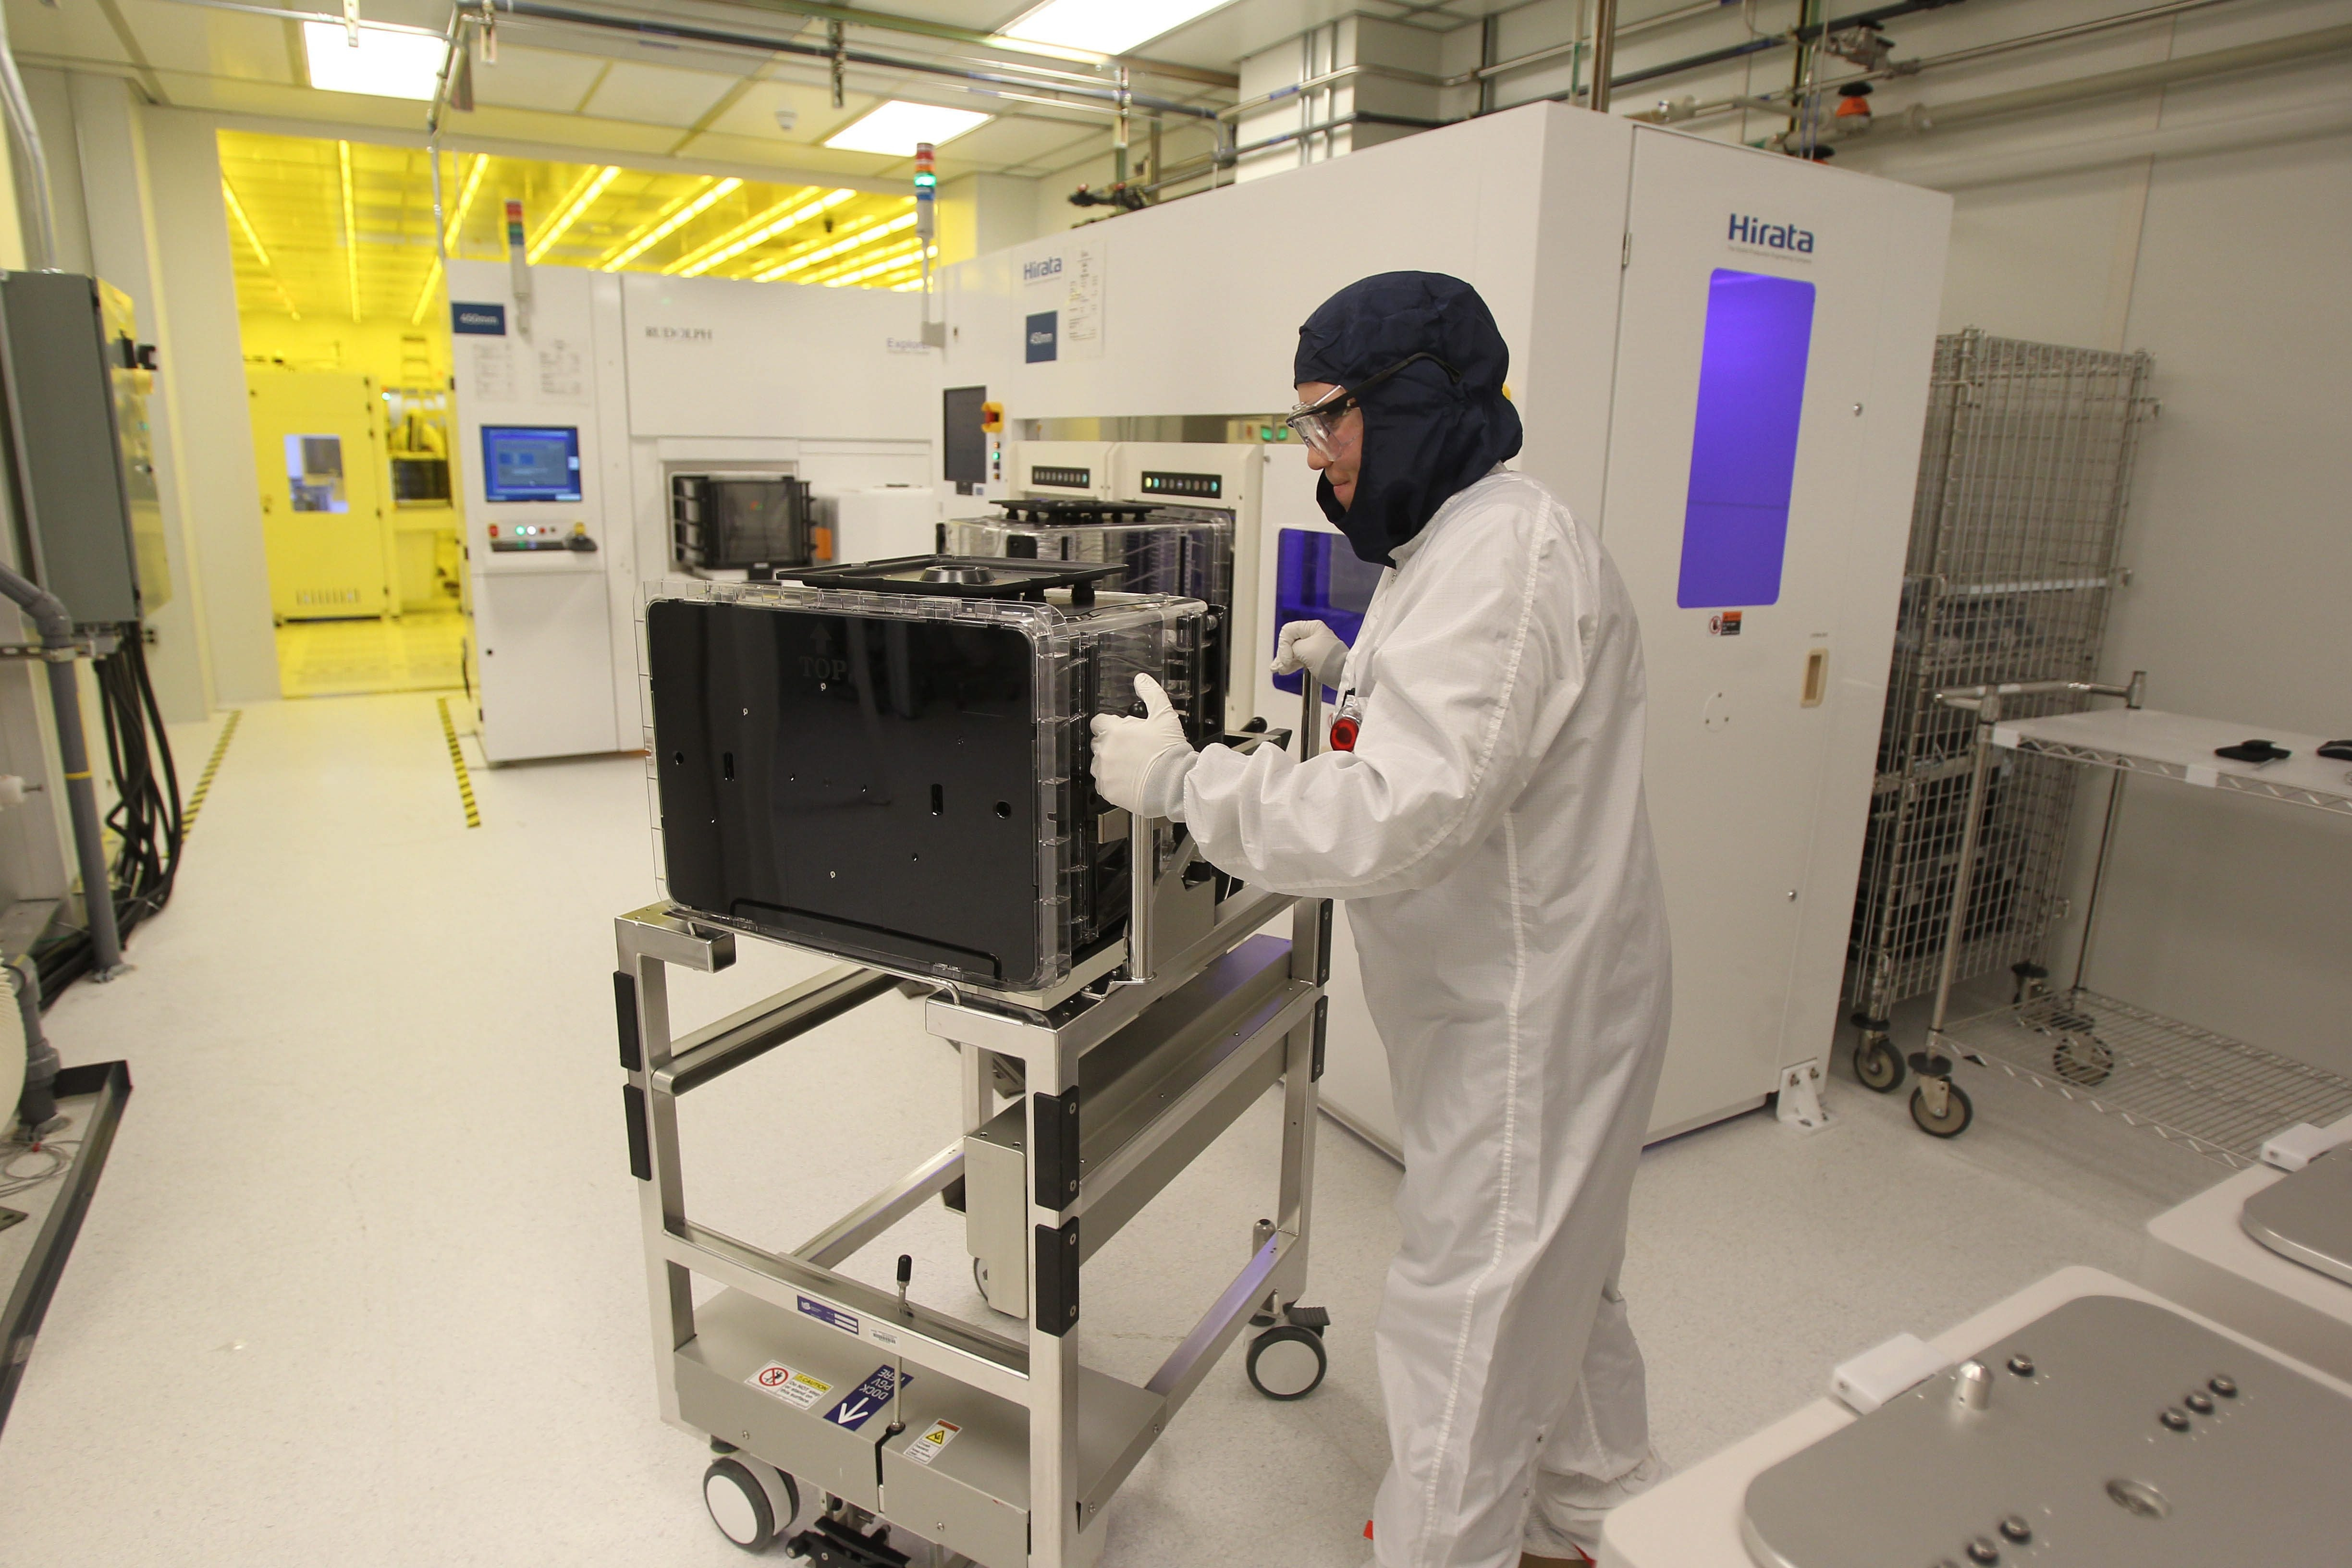 A technician works in a cleanroom at the SUNY College of Nanoscale Science and Engineering in Albany. (Buffalo News file photo)